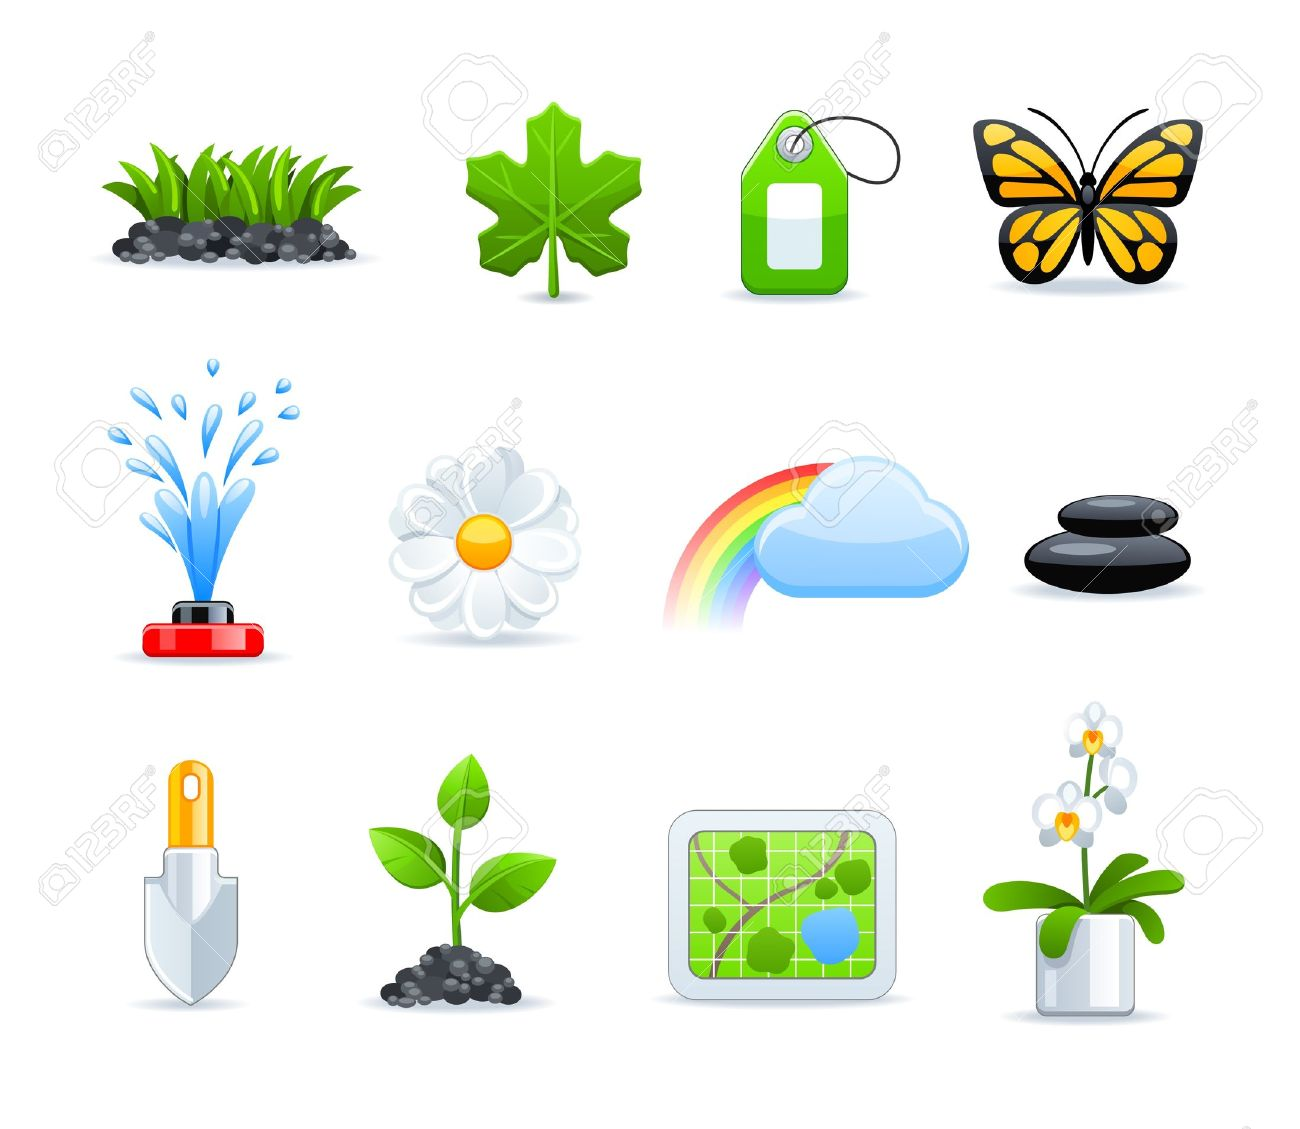 Gardening Icon Set Royalty Free Cliparts, Vectors, And Stock.